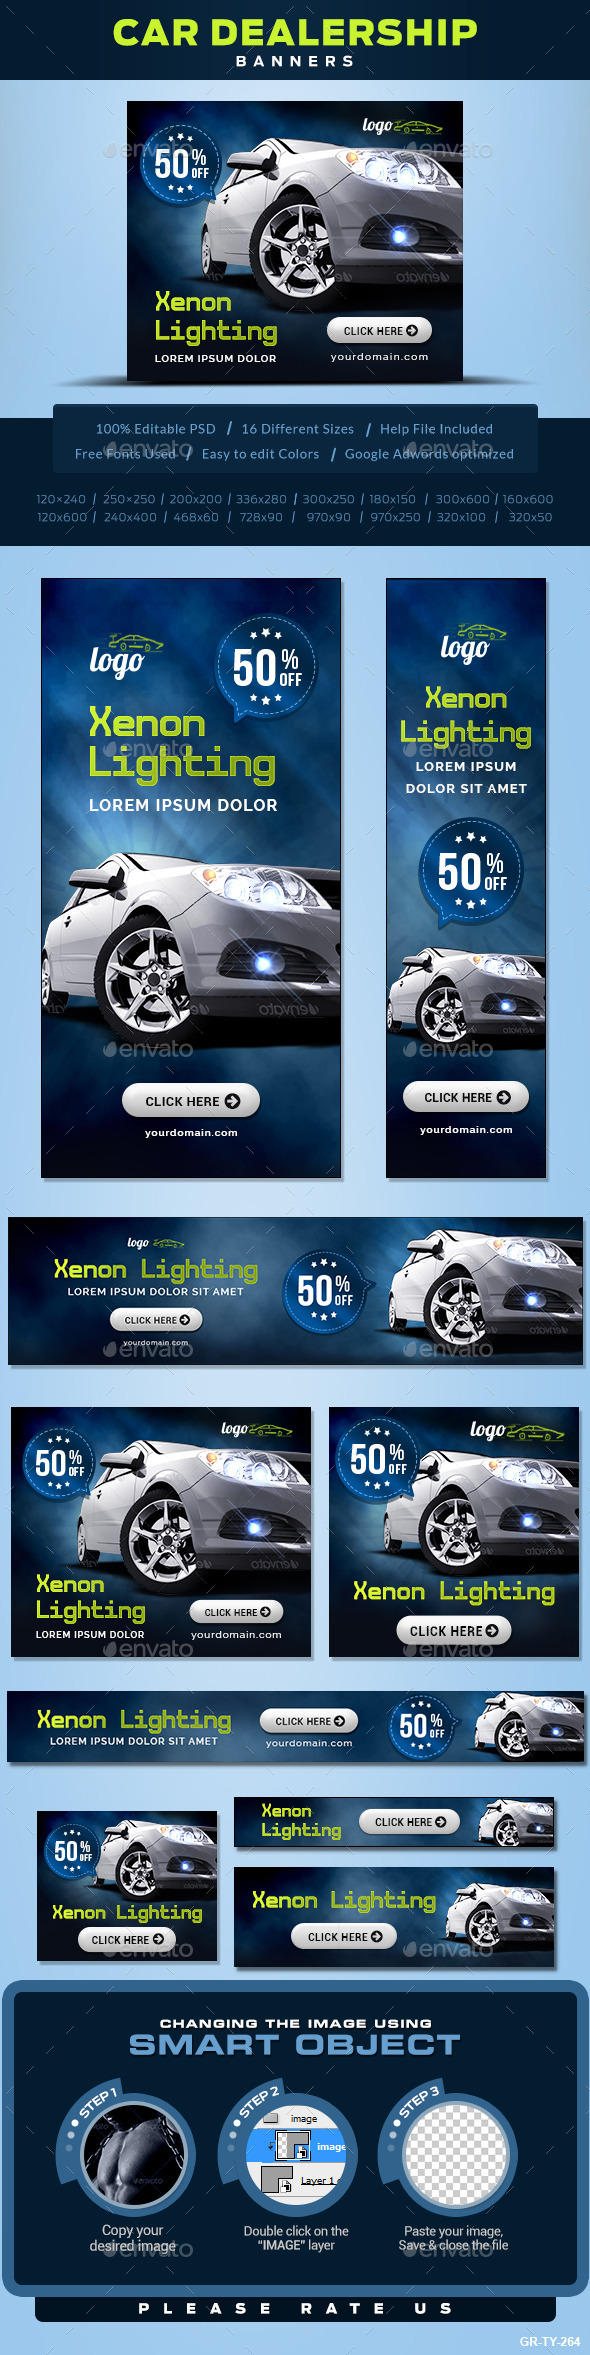 Car Accessories Banners - Banners & Ads Web Elements